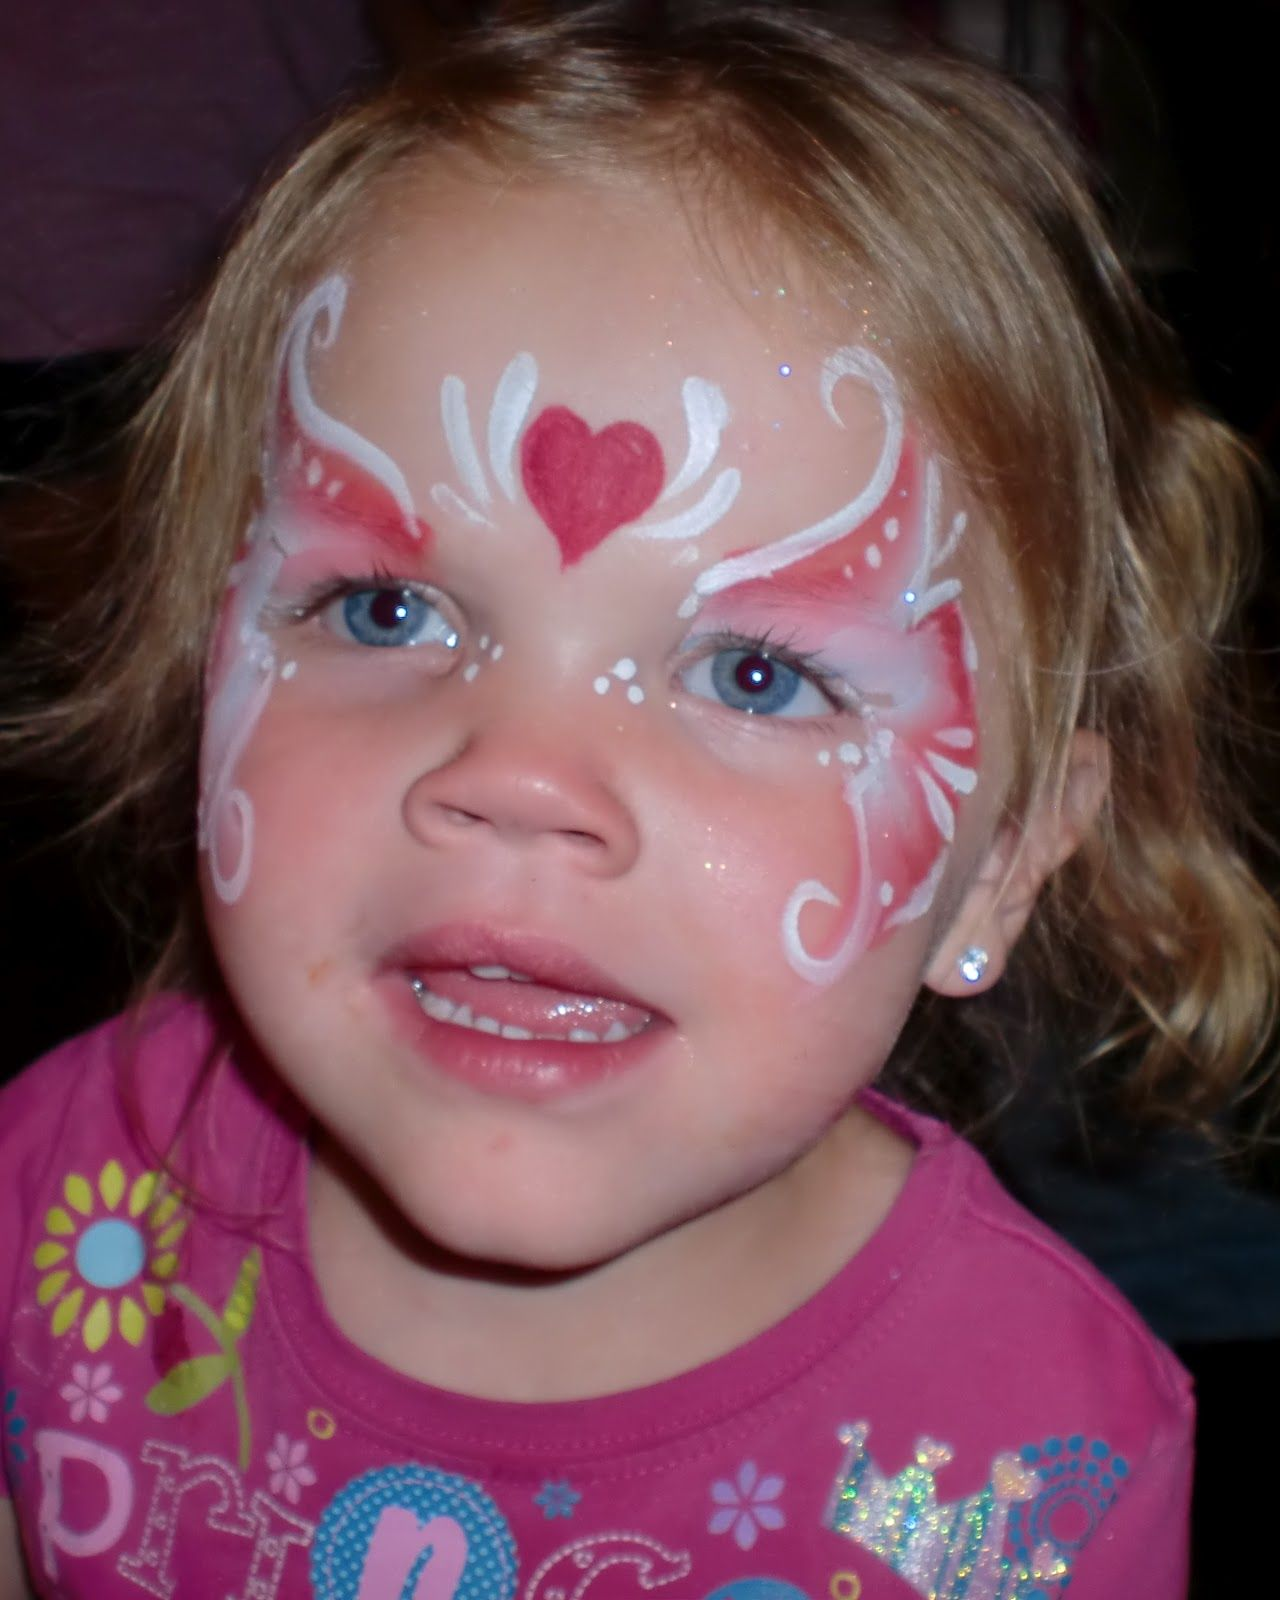 face painting | Face Painting Illusions and Balloon Art, LLC: Valentine's Day Heart ...